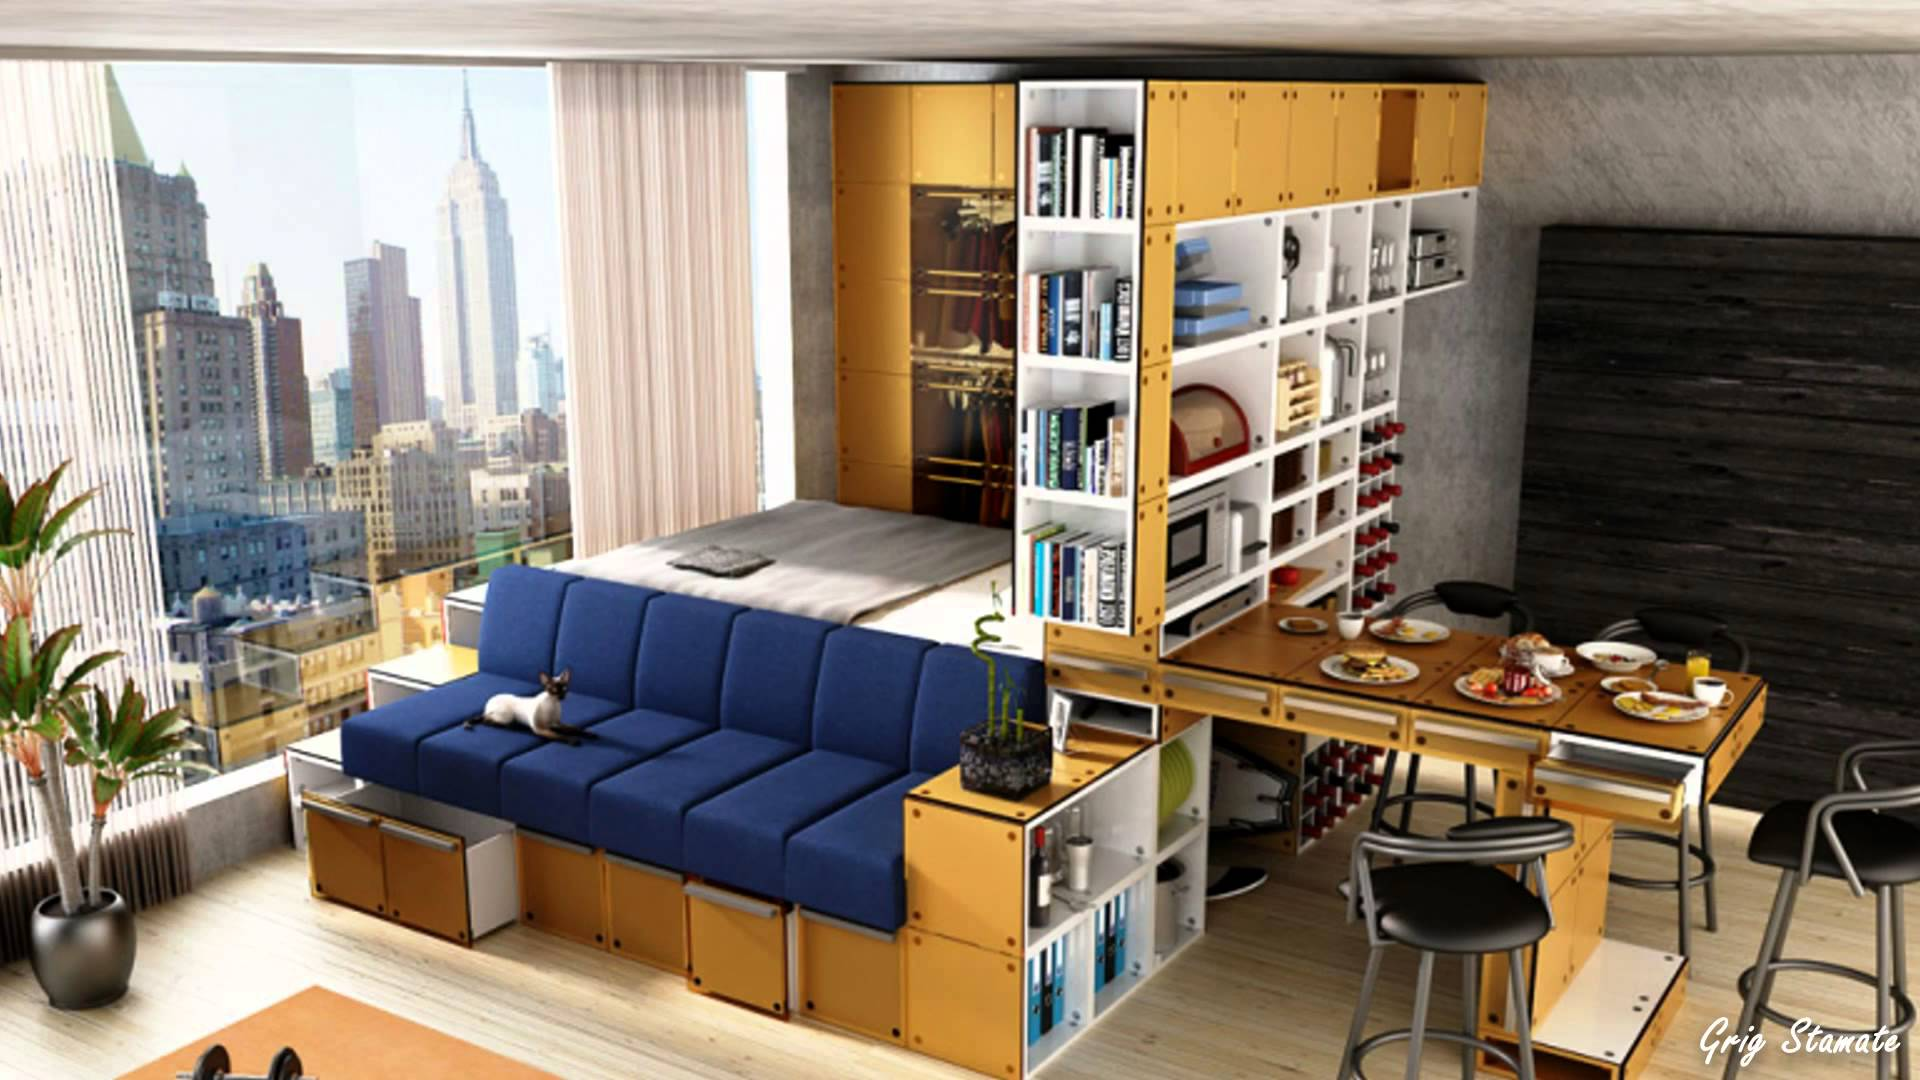 Storage E Dining And Sofa In Living Area